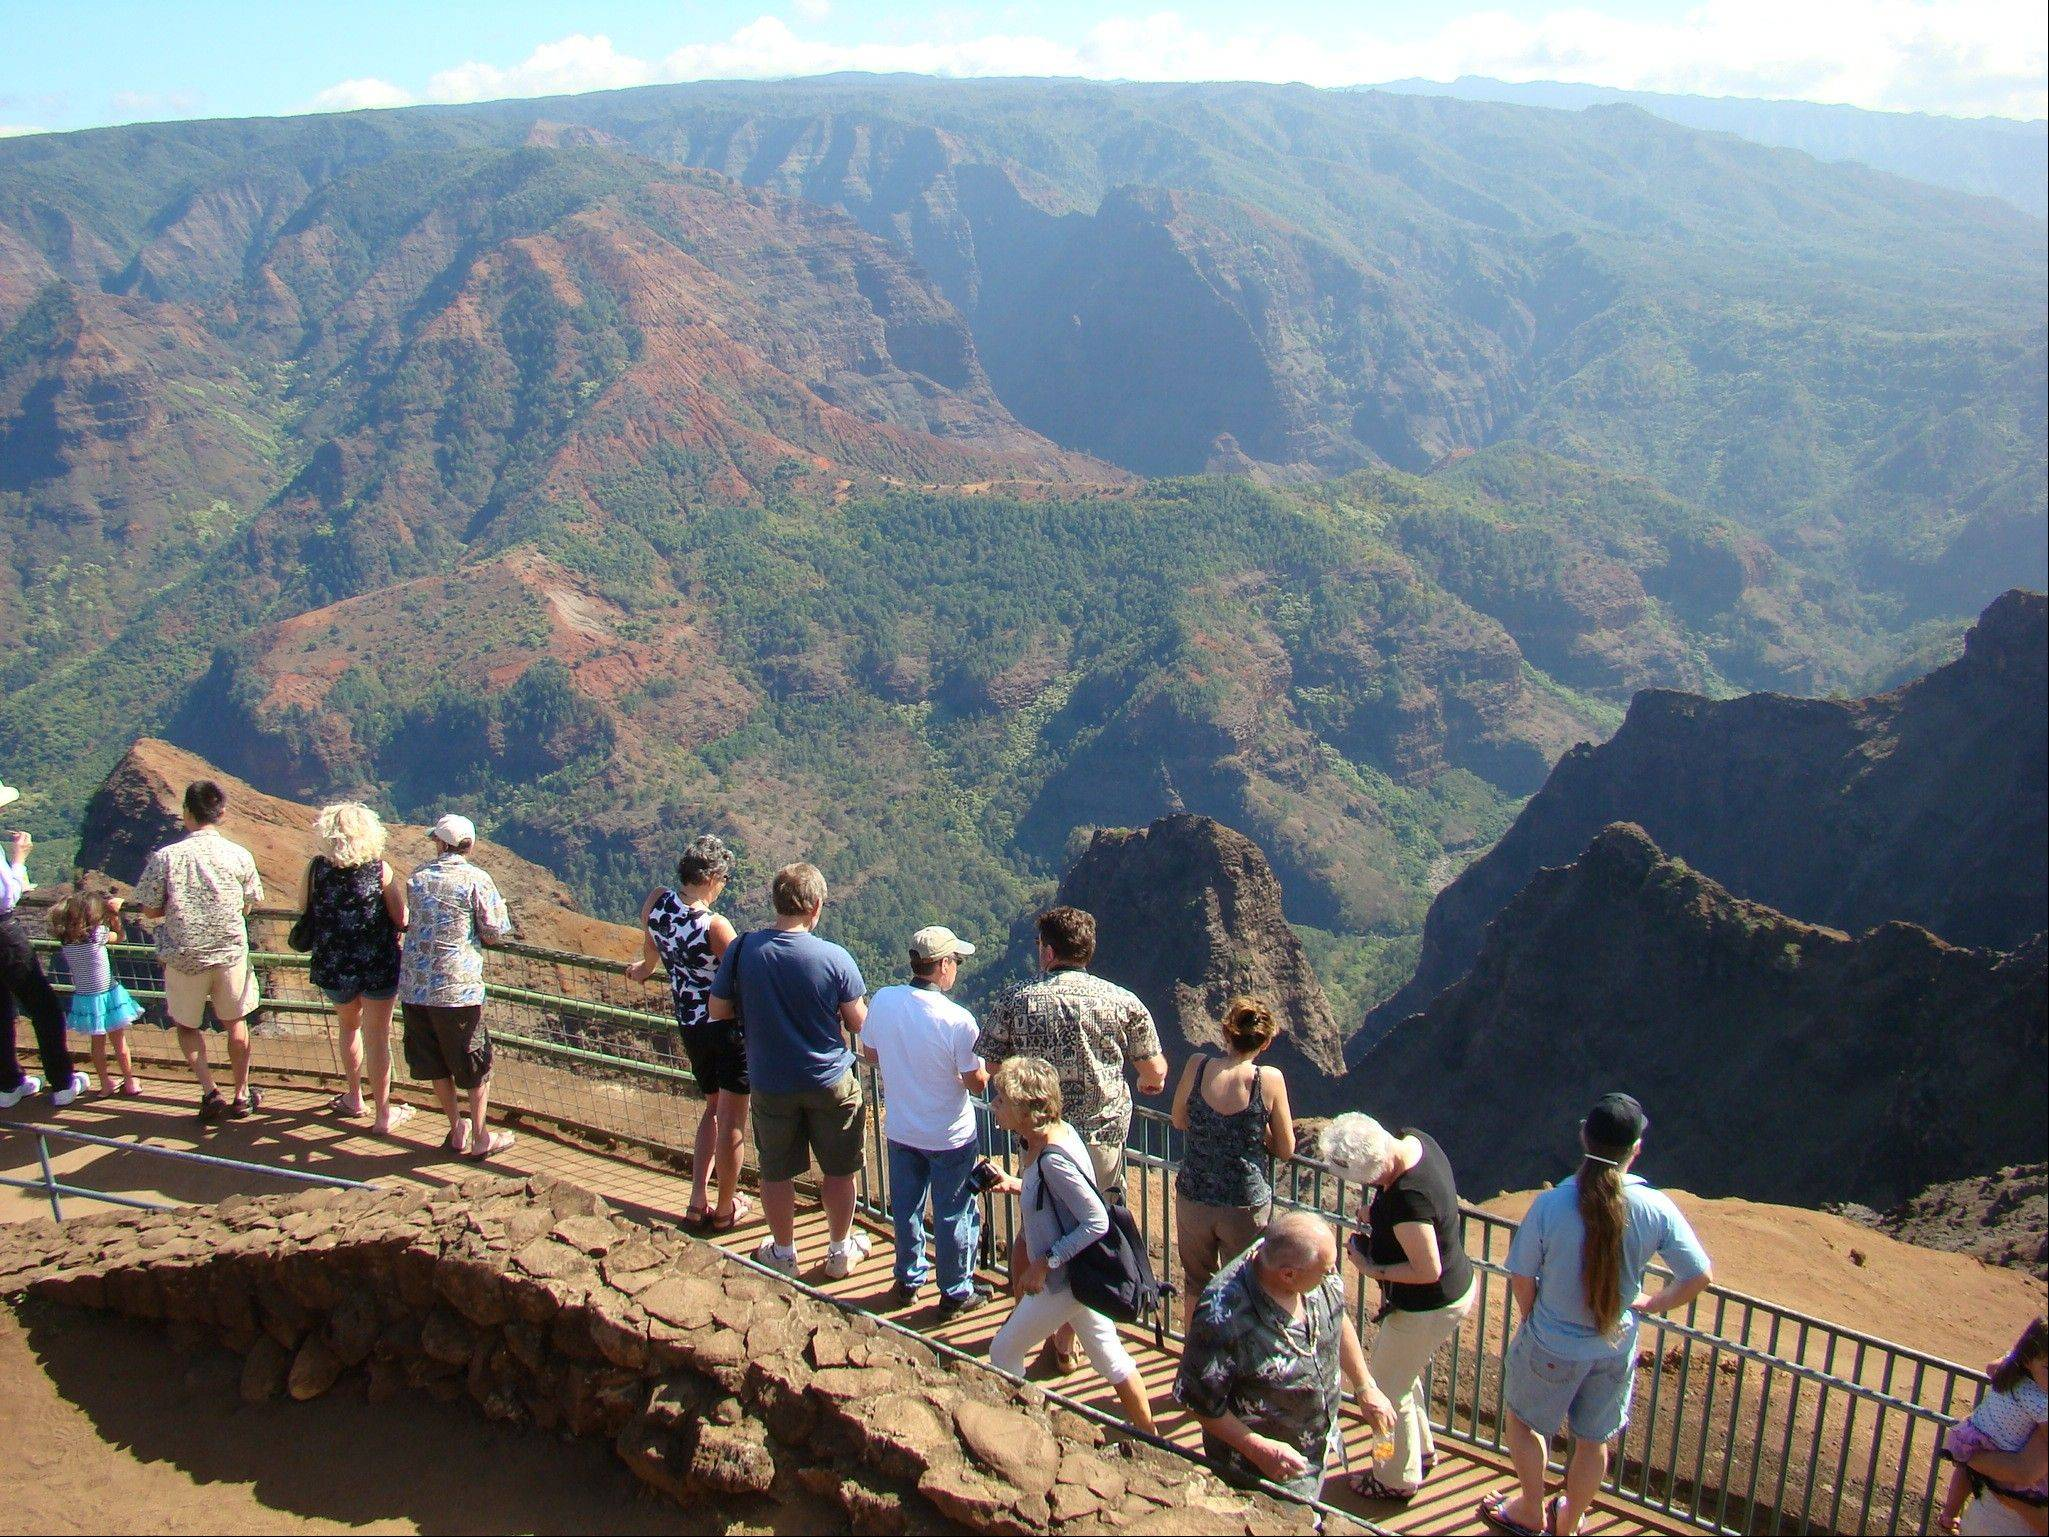 Tourists line up to view Waimea Canyon on the island of Kauai, Hawaii. The natural wonder has been dubbed the Grand Canyon of the Pacific.